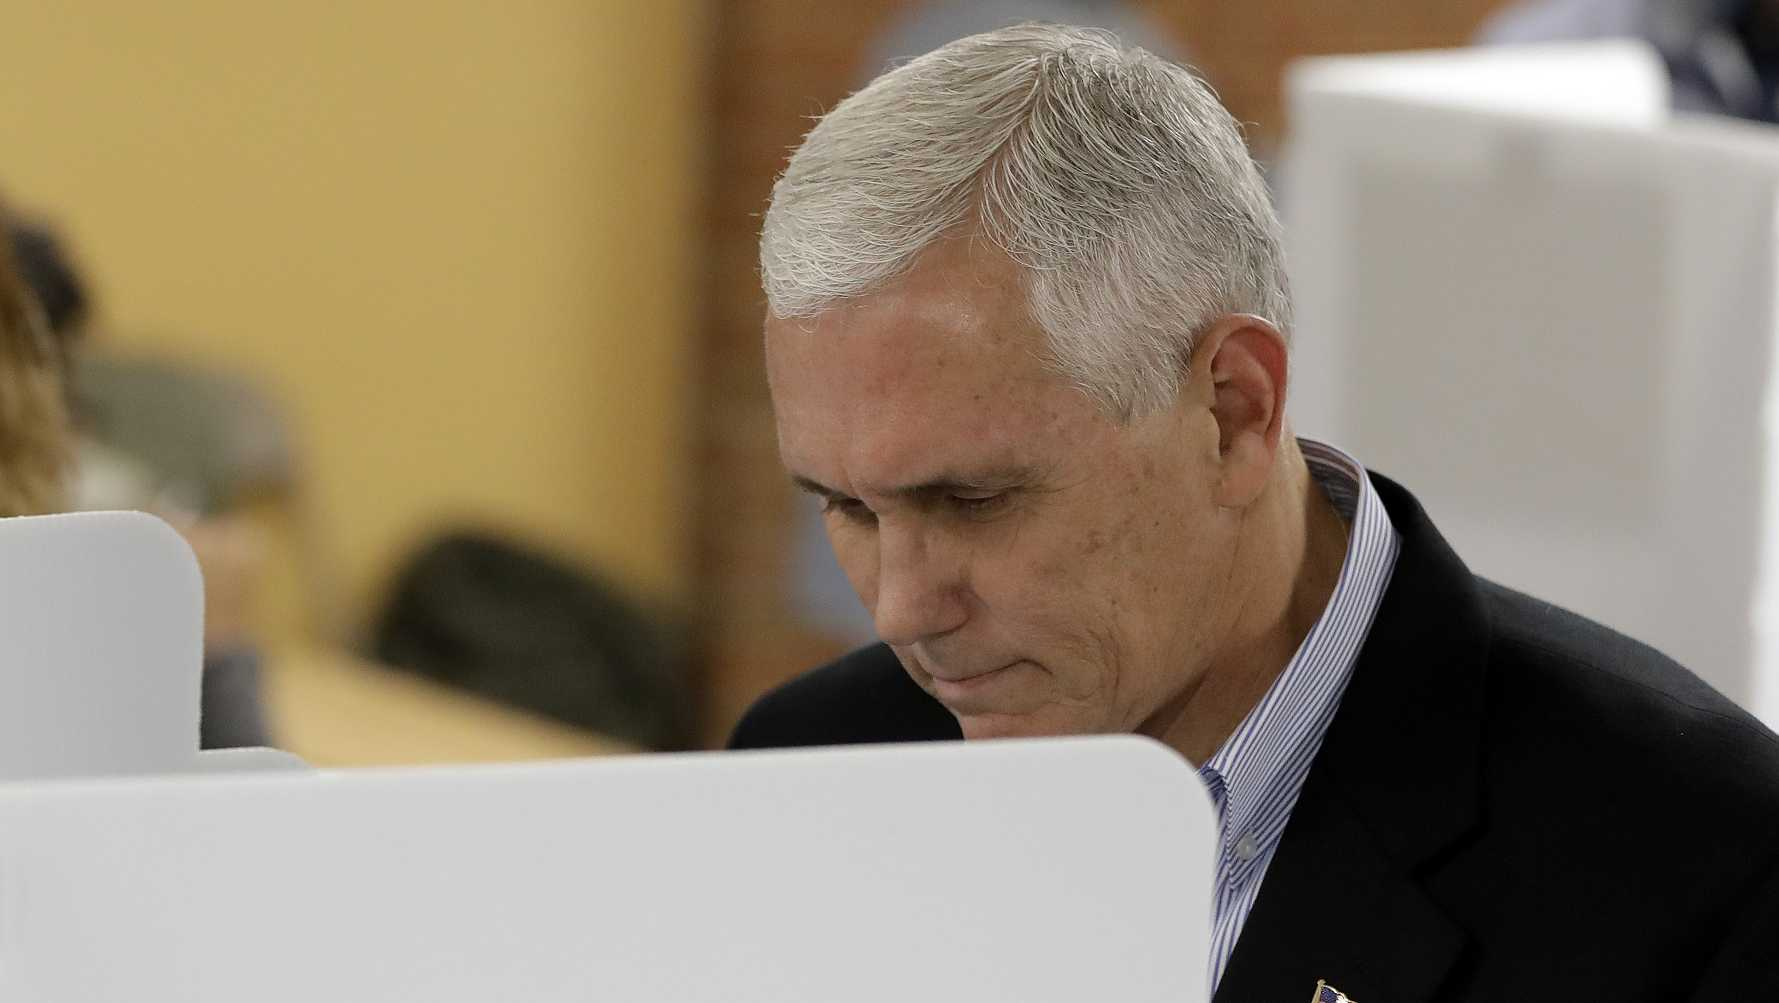 Republican vice presidential candidate, Indiana Gov. Mike Pence, cast his is ballot in Indianapolis.